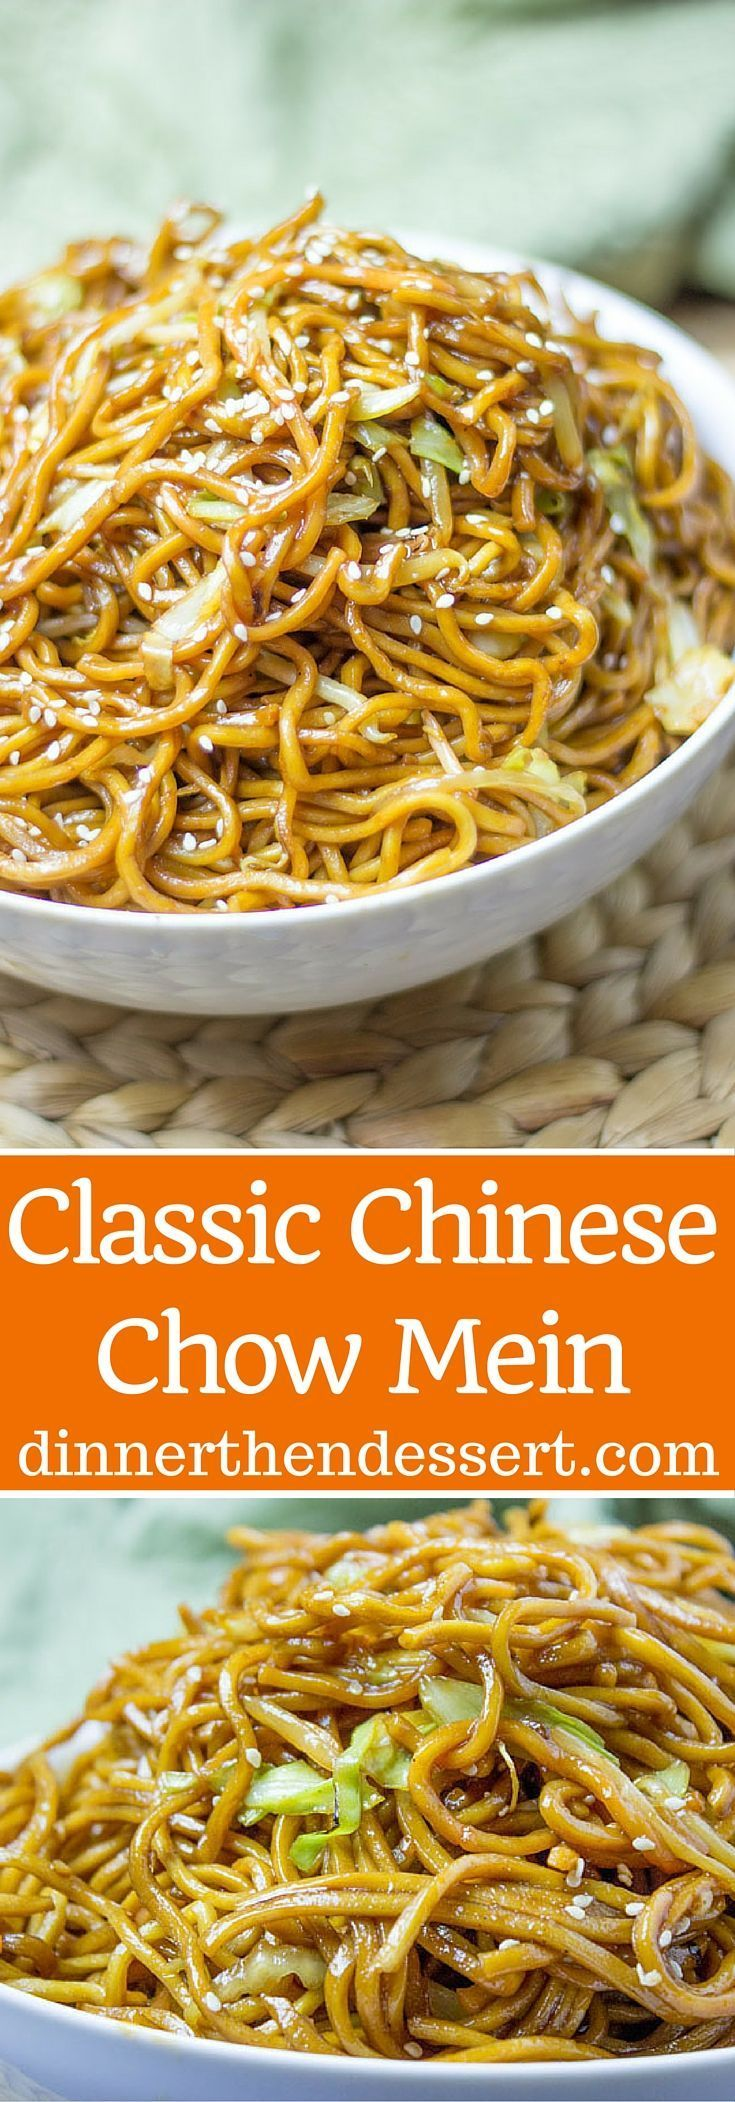 284 best chinese food recipes images on pinterest classic chinese chow mein with authentic ingredients and easy ingredient swaps to make this a pantry forumfinder Choice Image